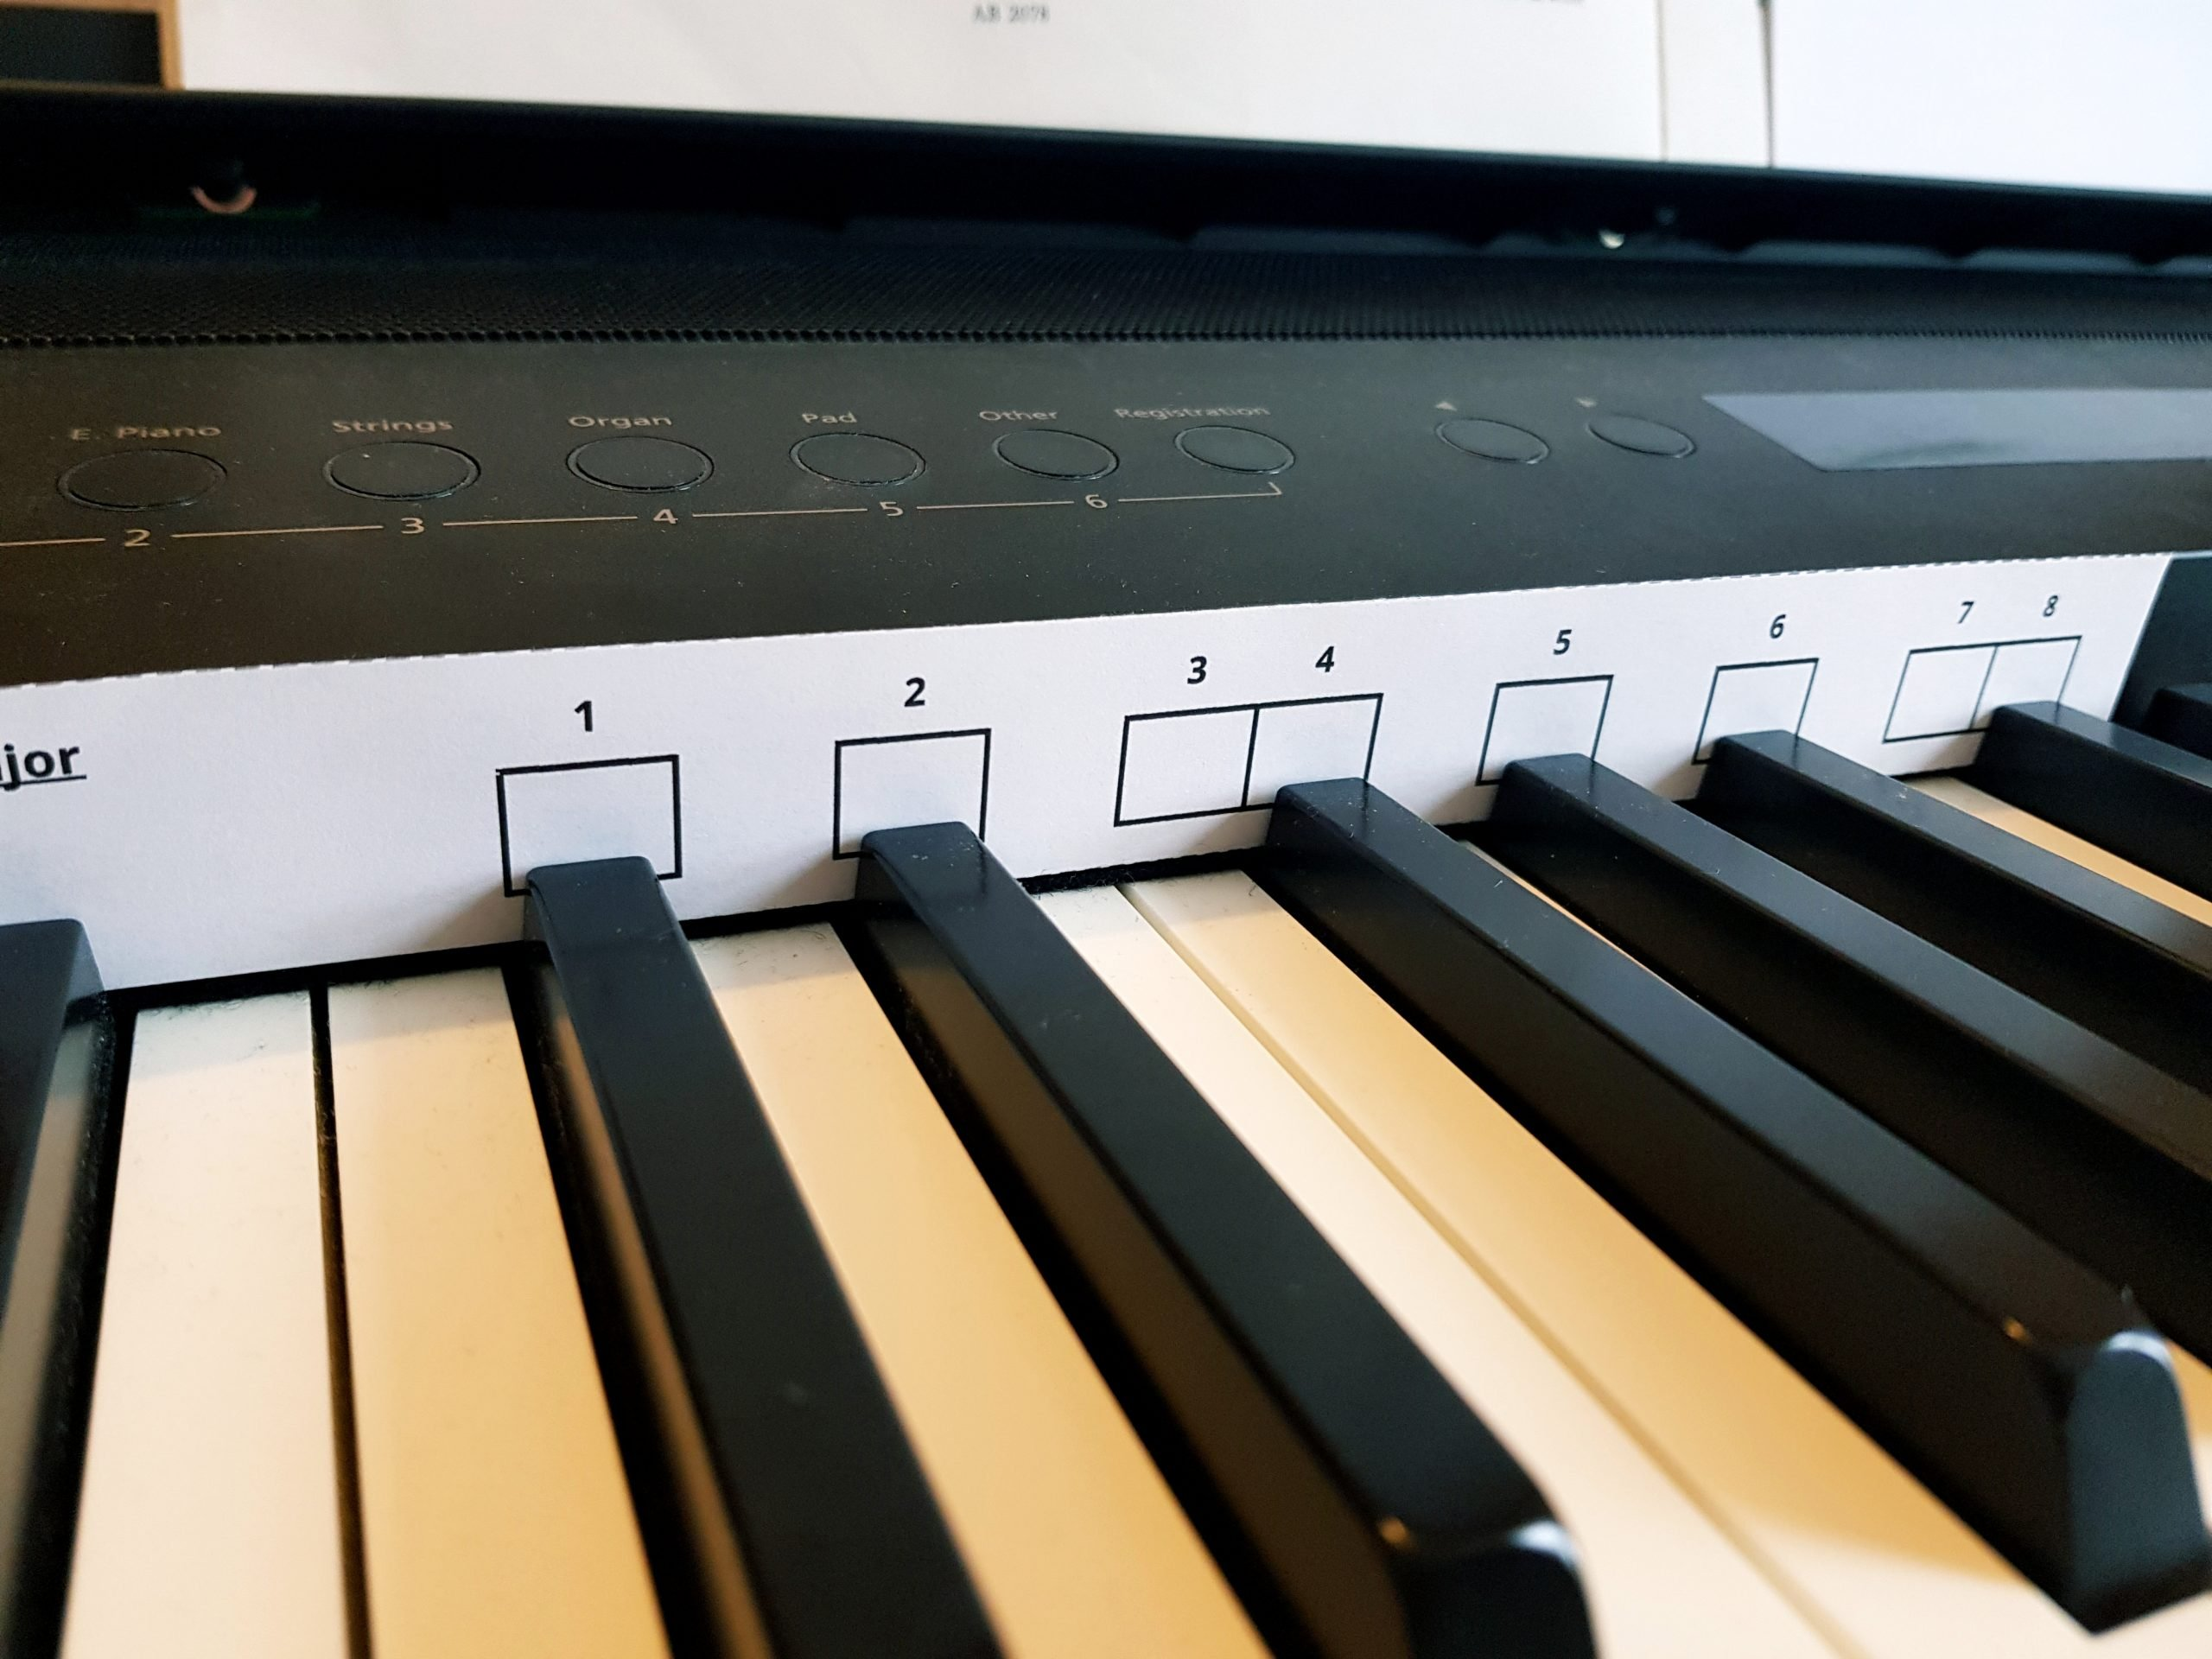 Image of a piano keyboard with a major scale slider positioned behind the keys.